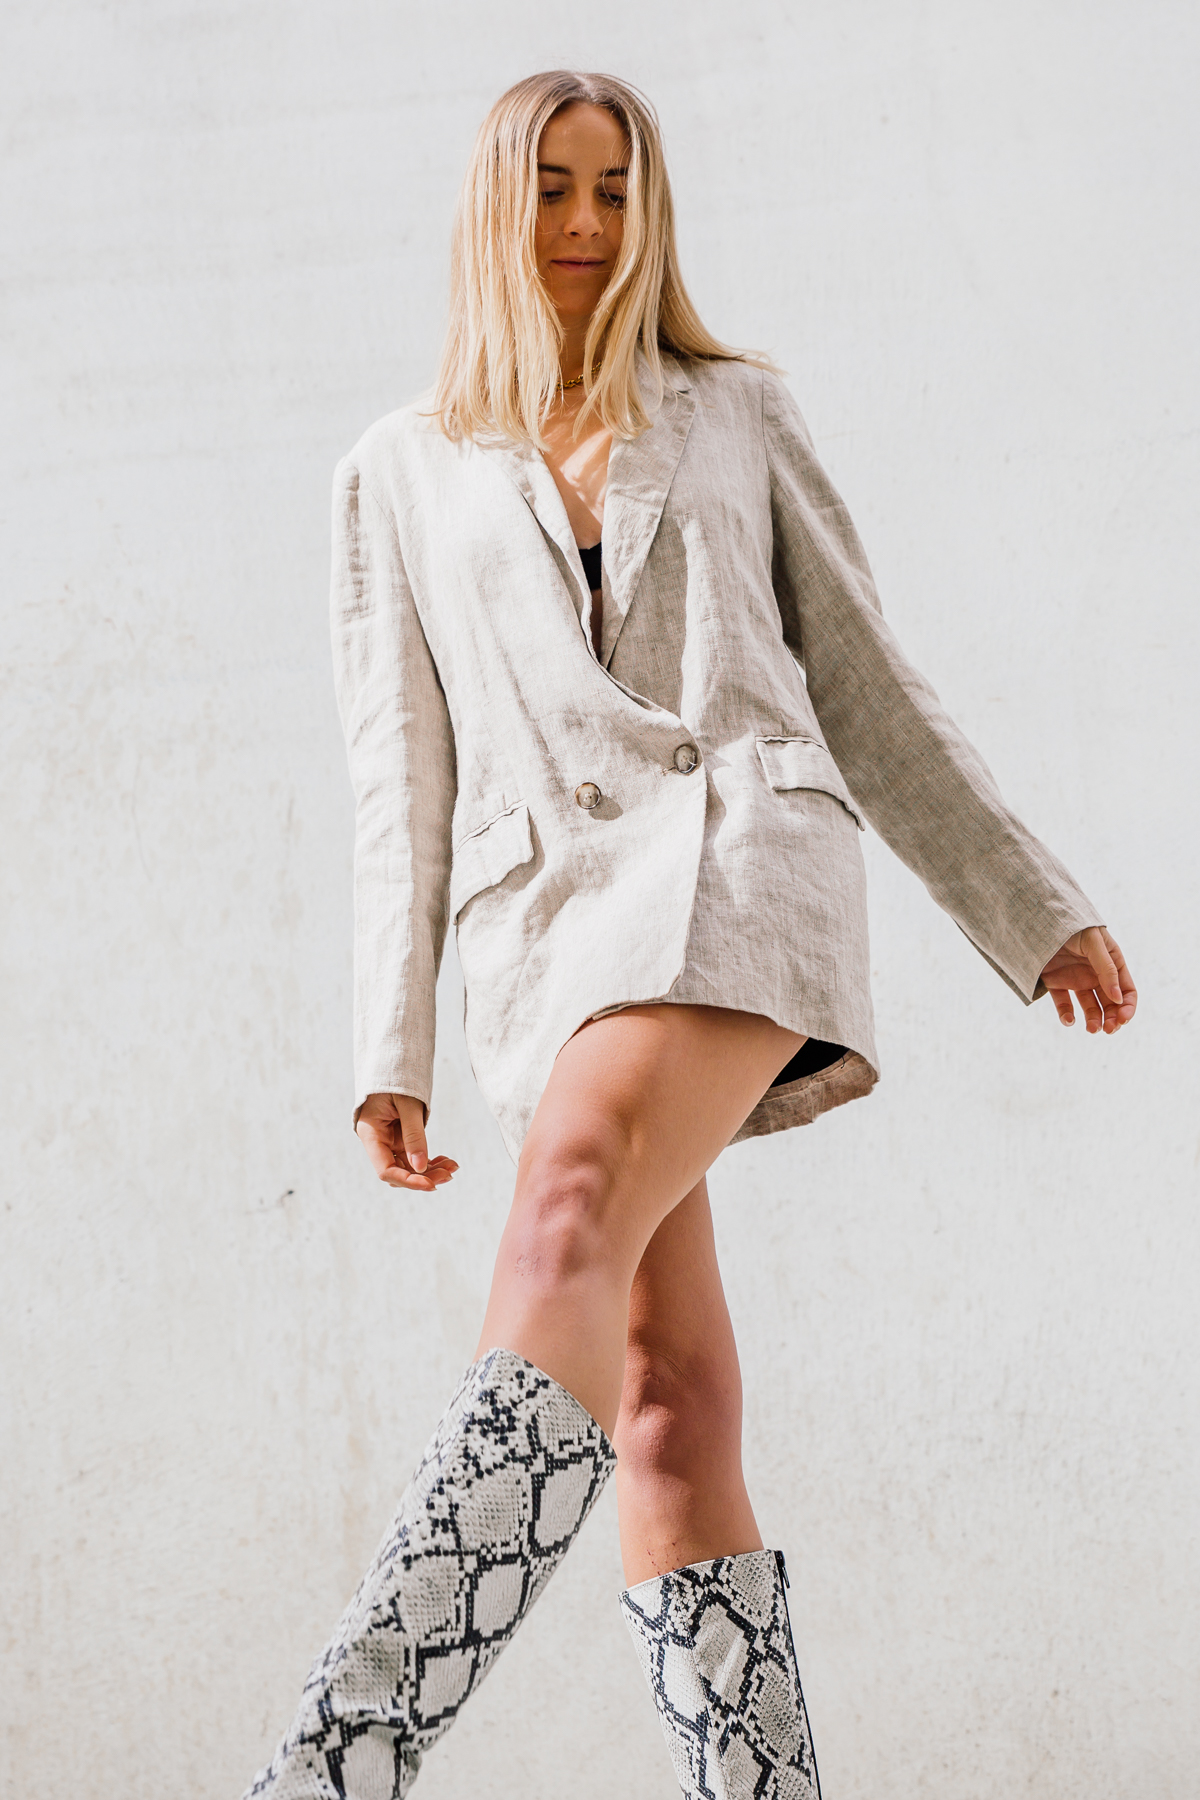 Reformation Linen Blazer & Snakeskin Knee High Boots | Stoleninspiration.com NZ Top Fashion Blogger